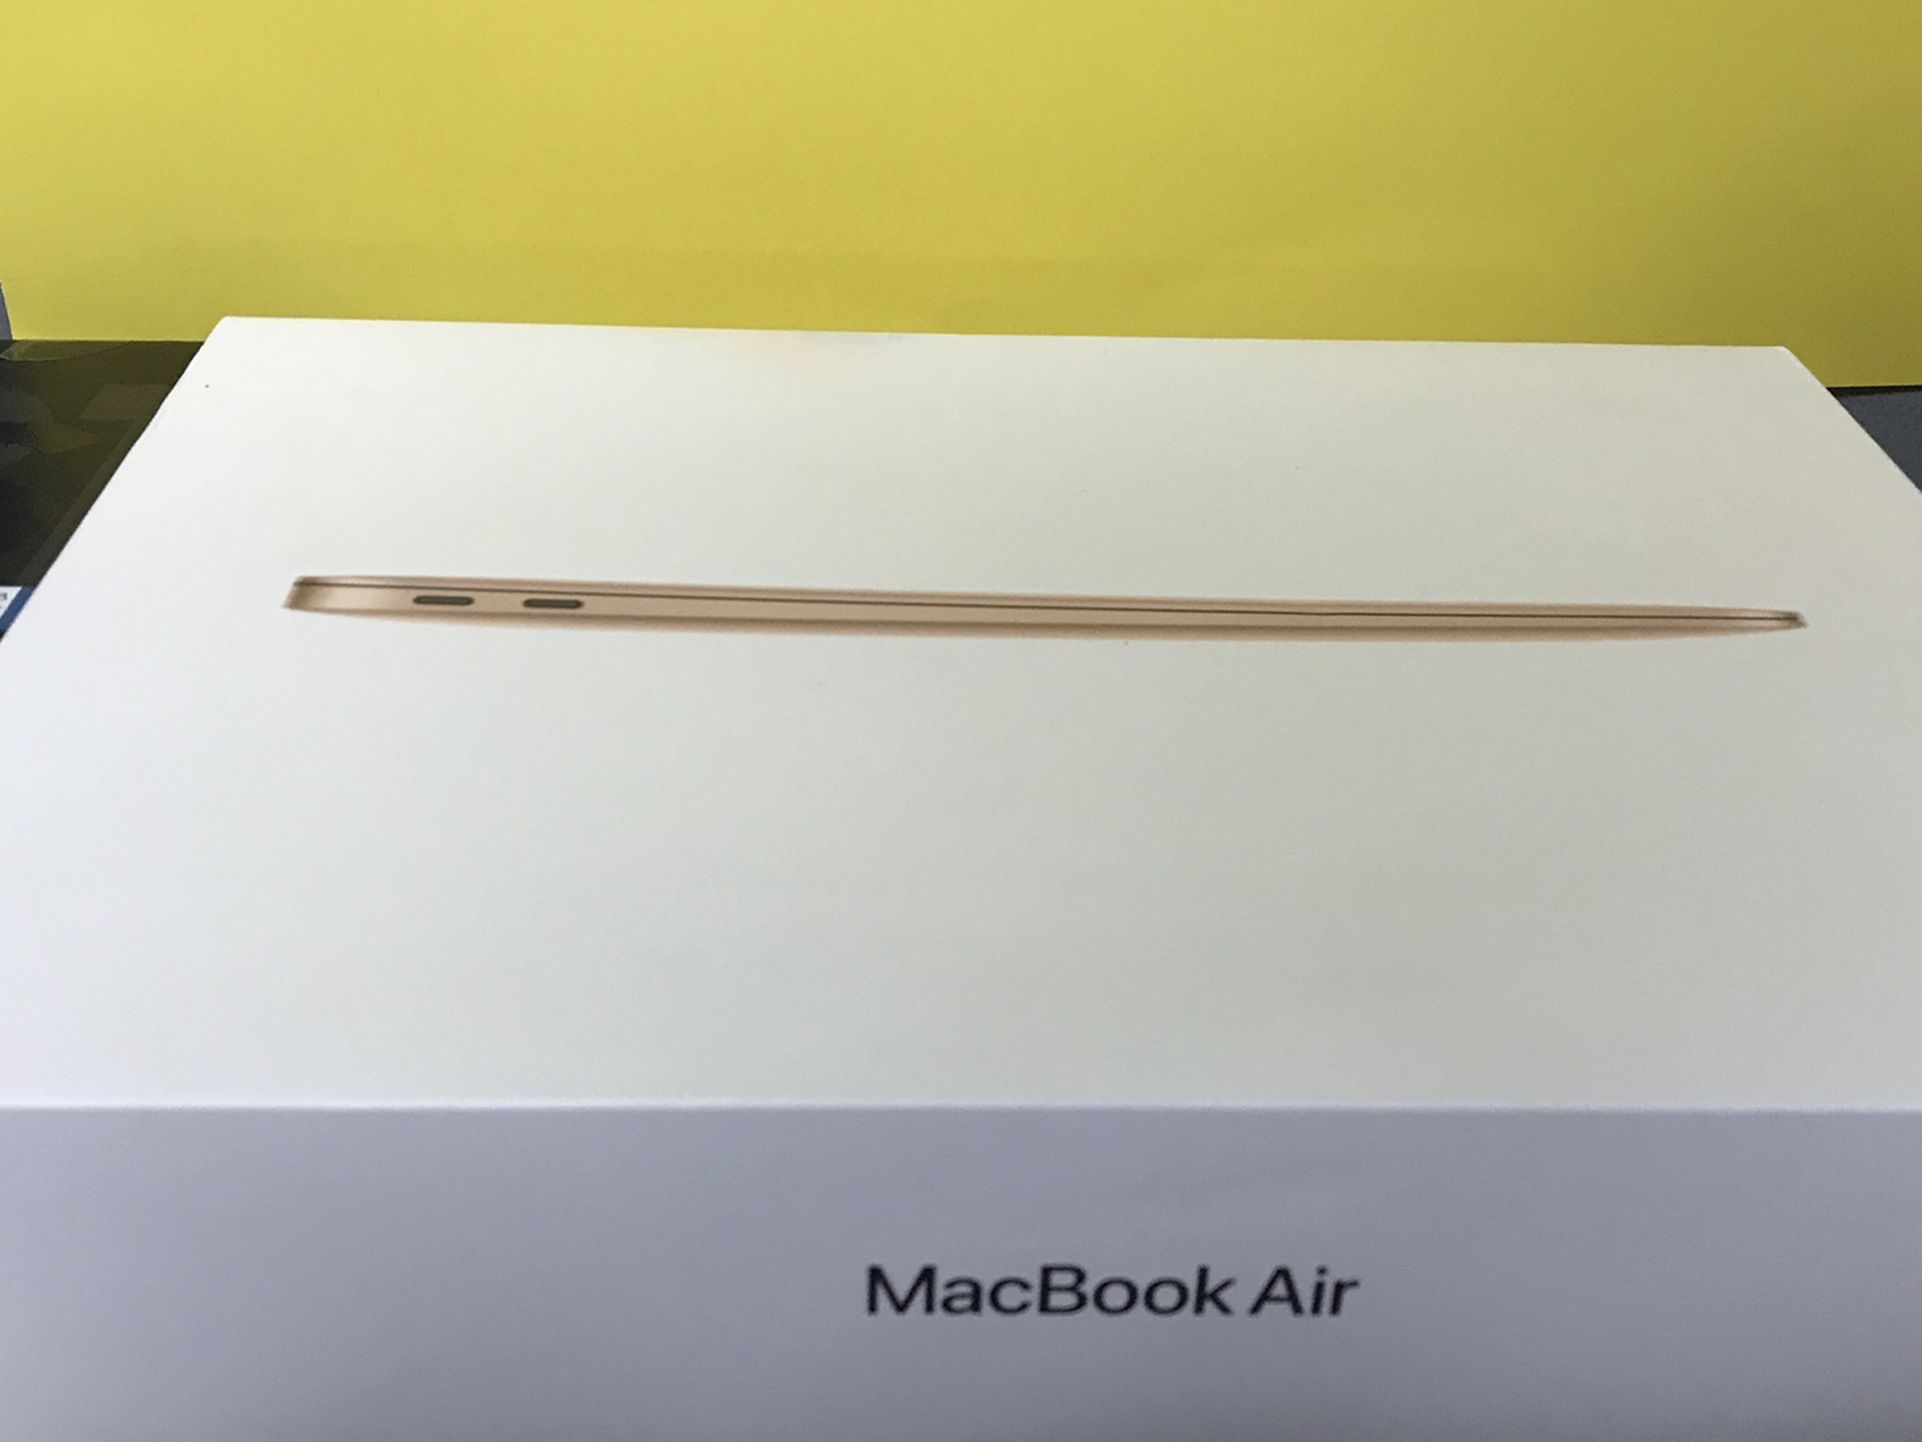 2020 MacBook Air Rose Gold New Sealed In Box Withn1 Year Apple Care Finanacing Available For 54 Down No Credit Needed Take Home Today